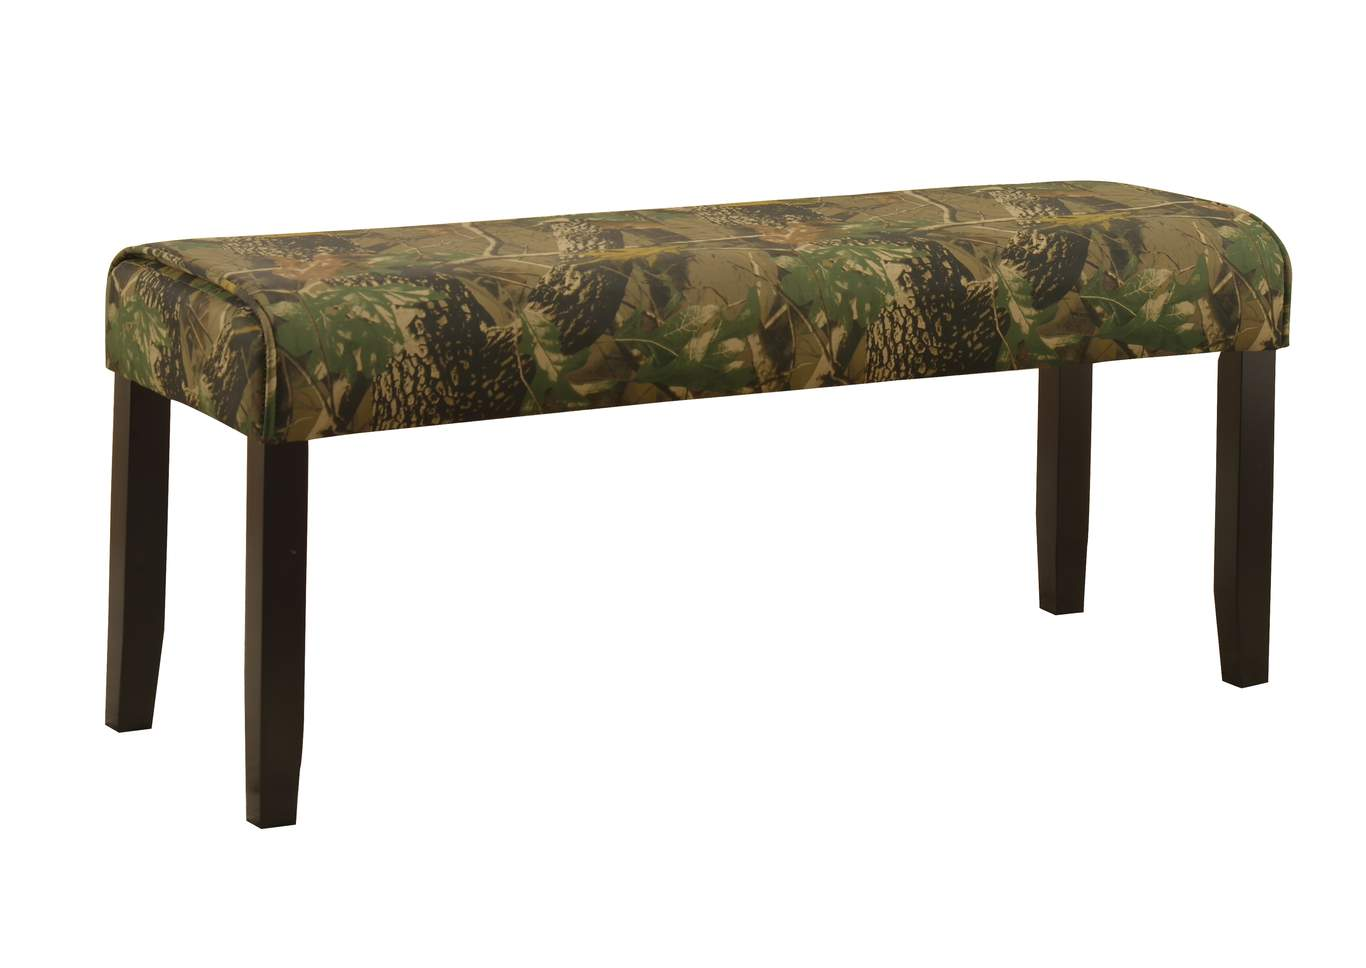 Adams Furniture and Appliance Browning Bench : 4194 BENCH from www.adamsfurnitureonline.com size 1050 x 744 jpeg 105kB